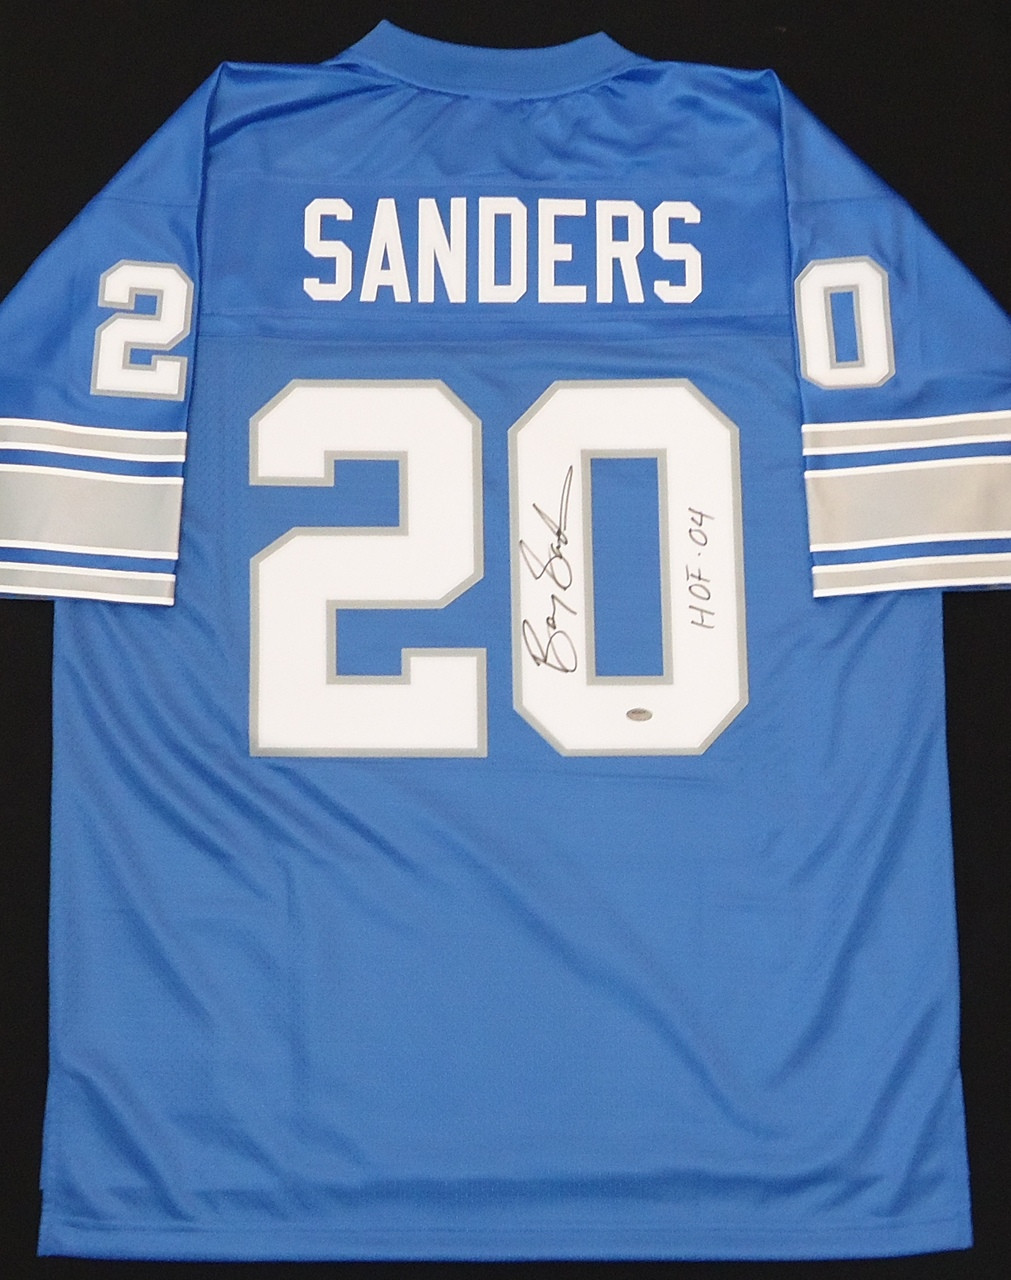 cheap for discount 9283a 63b03 Barry Sanders Autographed Detroit Lions Jersey - Blue Pro Line Inscribed